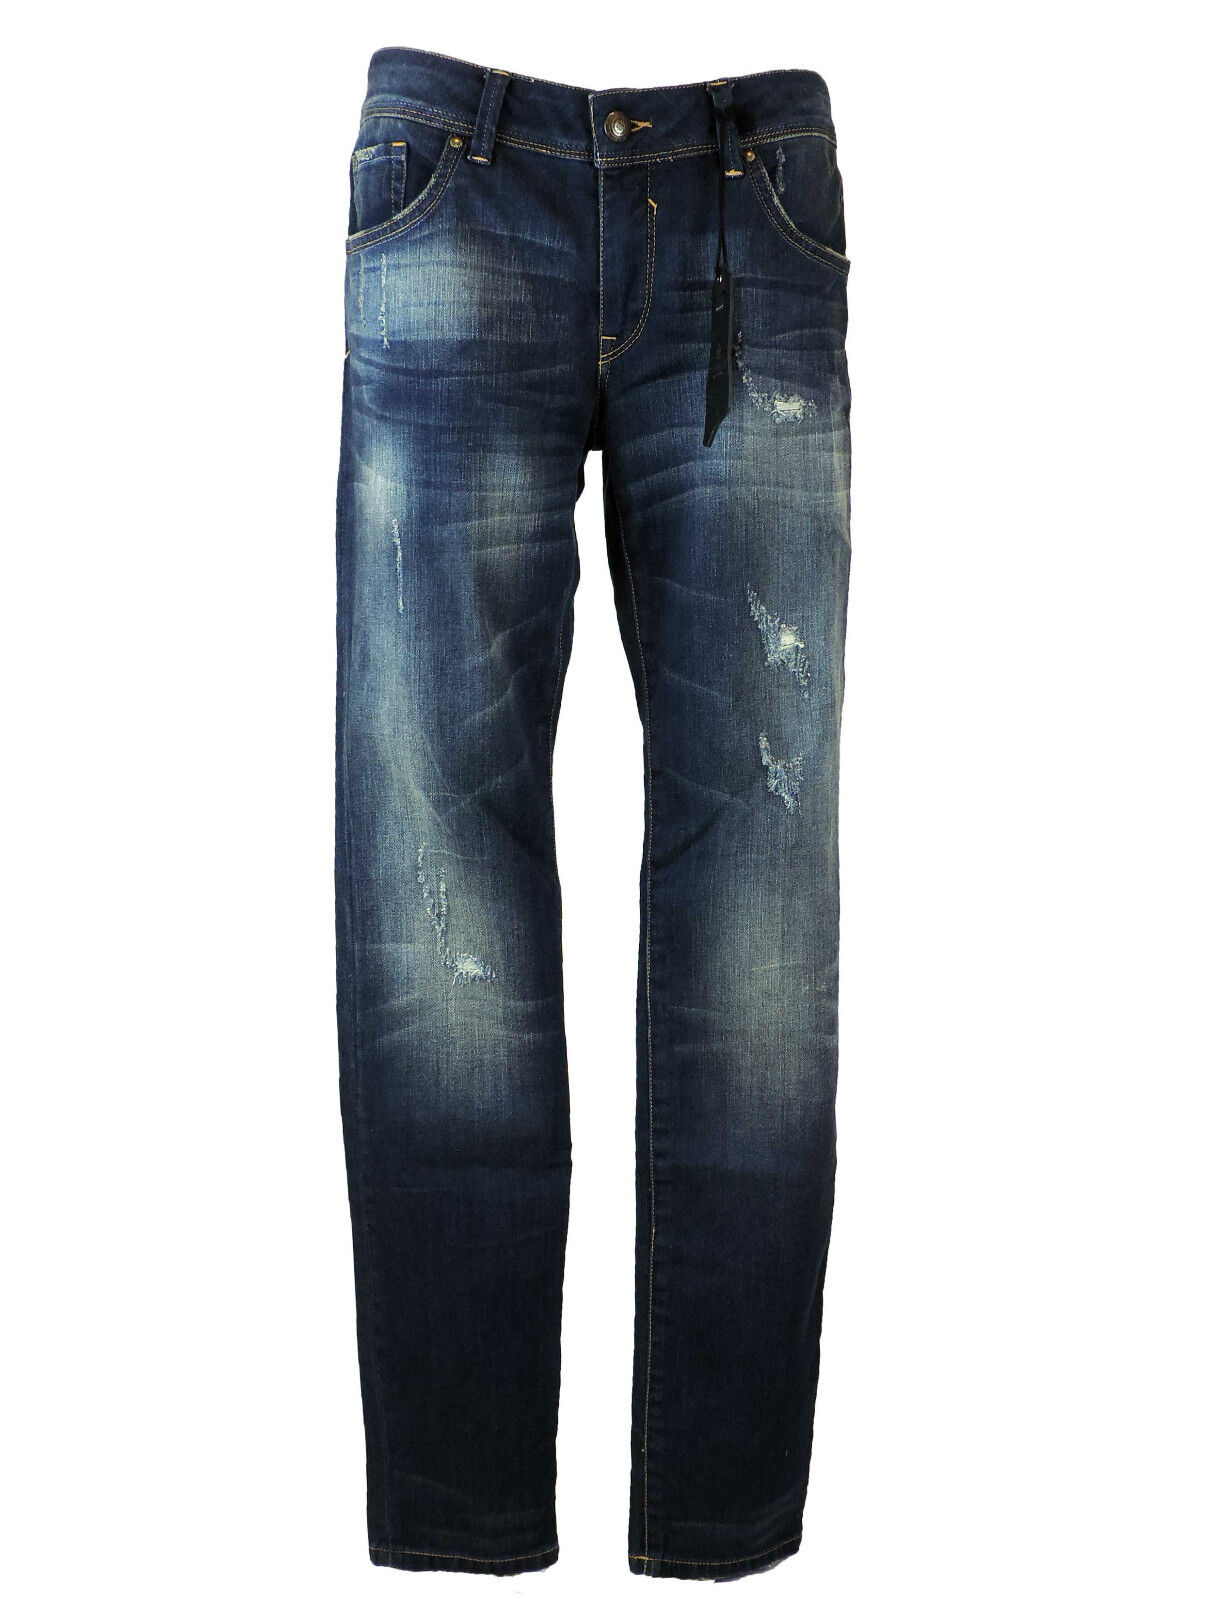 e5cd8cb5b1a3 Tribeca New York bluee Jeans W30 L34 denim blue faded destroyed neu mit  Etikett